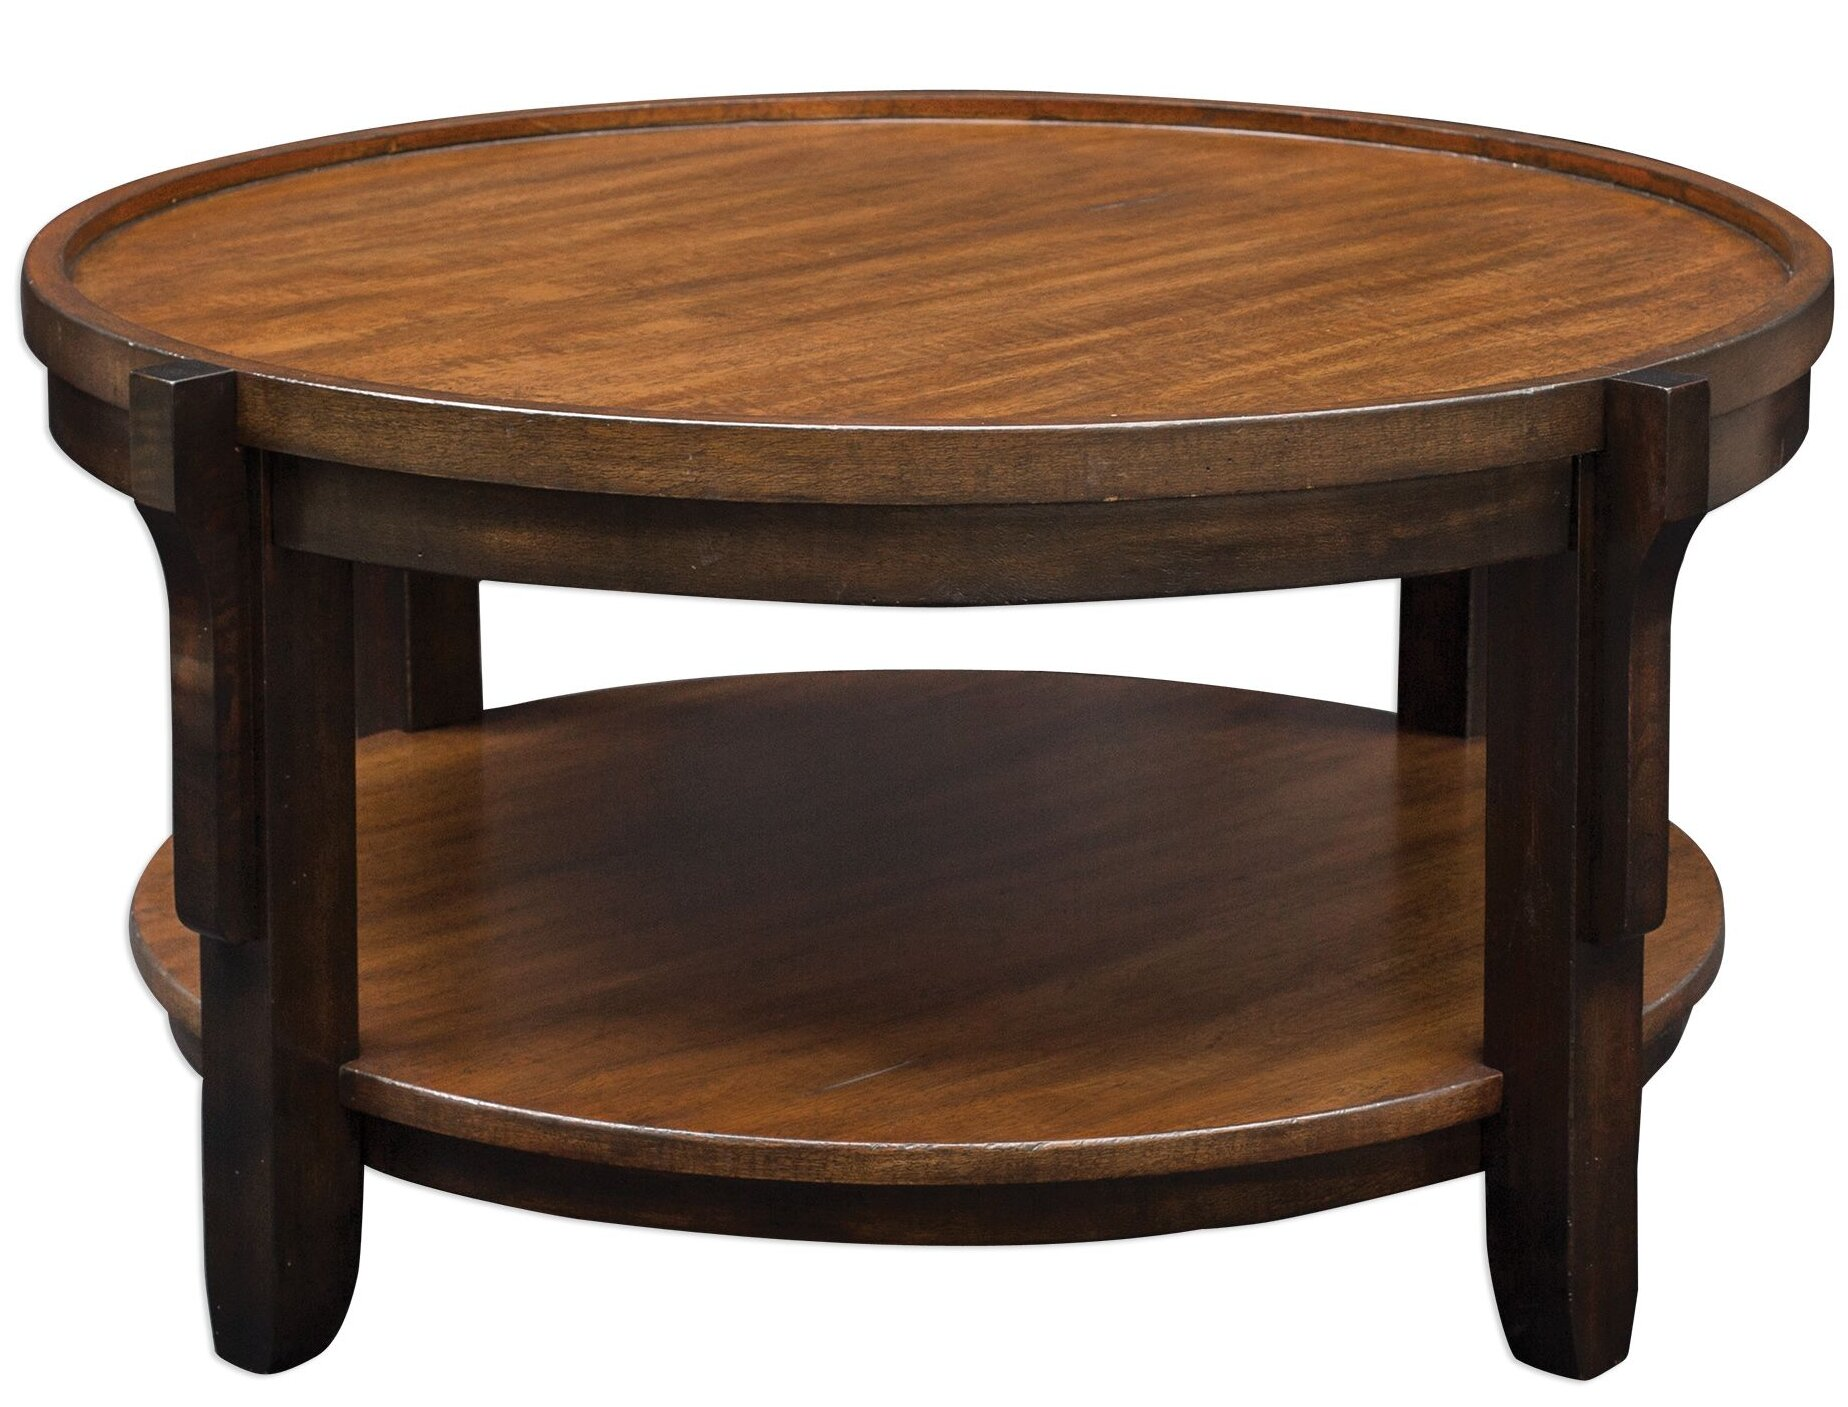 Bloomsbury Market Eugenie Round Wooden Coffee Table & Reviews